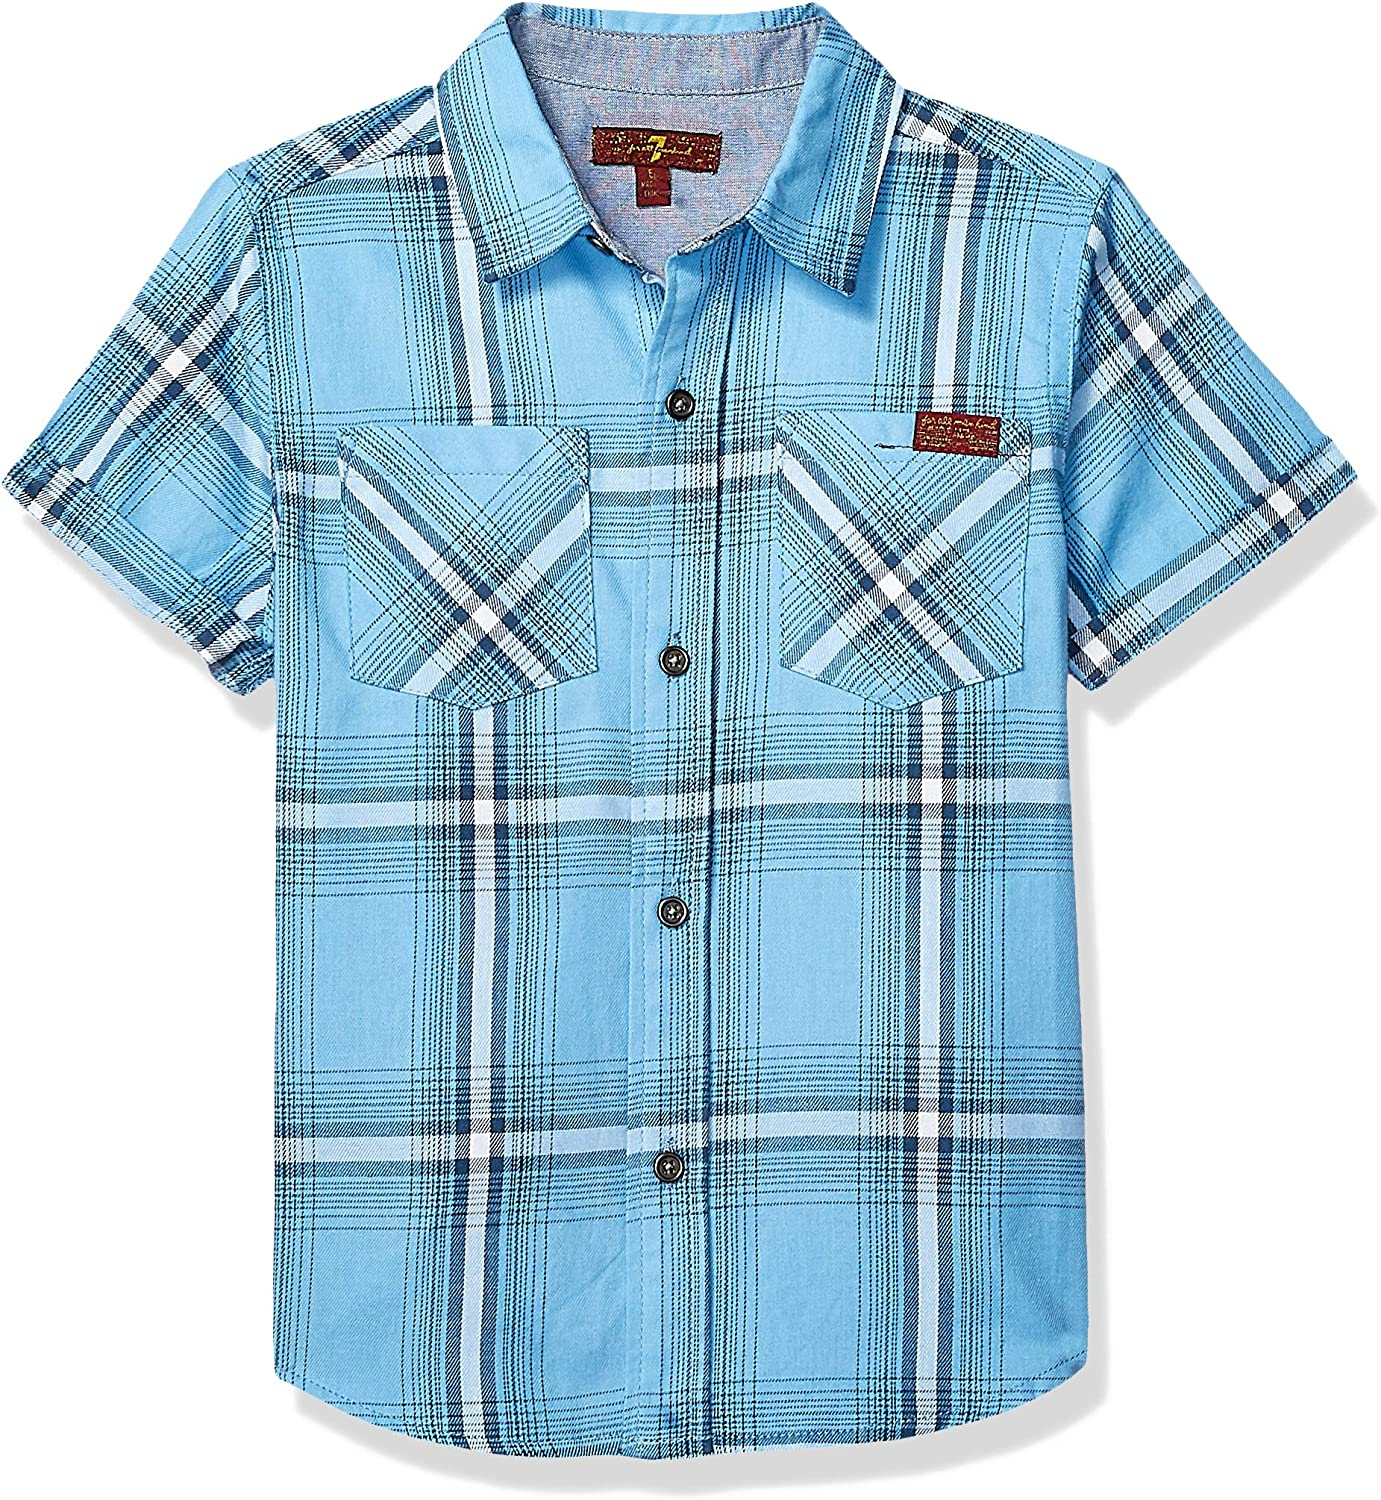 7 For All Mankind Boys' Short Sleeve Washed Twill Sport Shirt